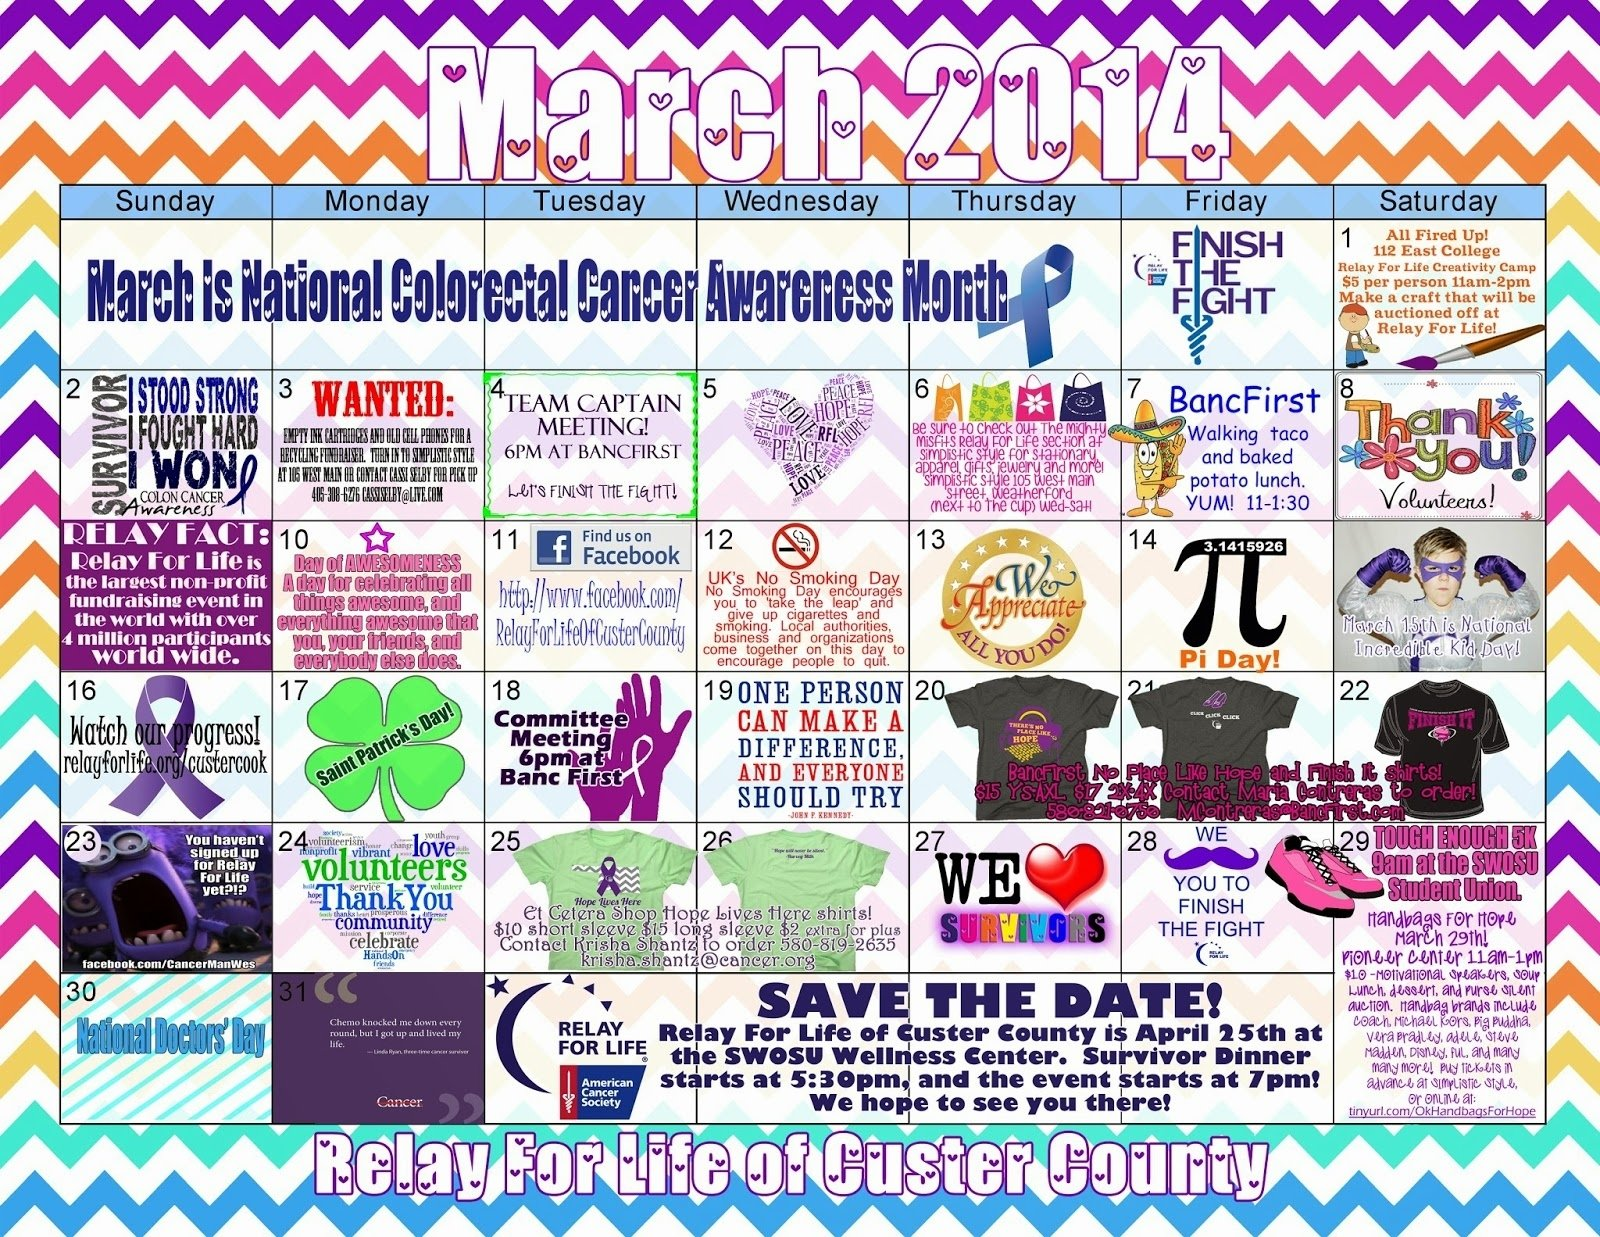 10 Most Recommended Relay For Life Fundraiser Ideas cassi selby relay for life fundraising and event calendar 2021